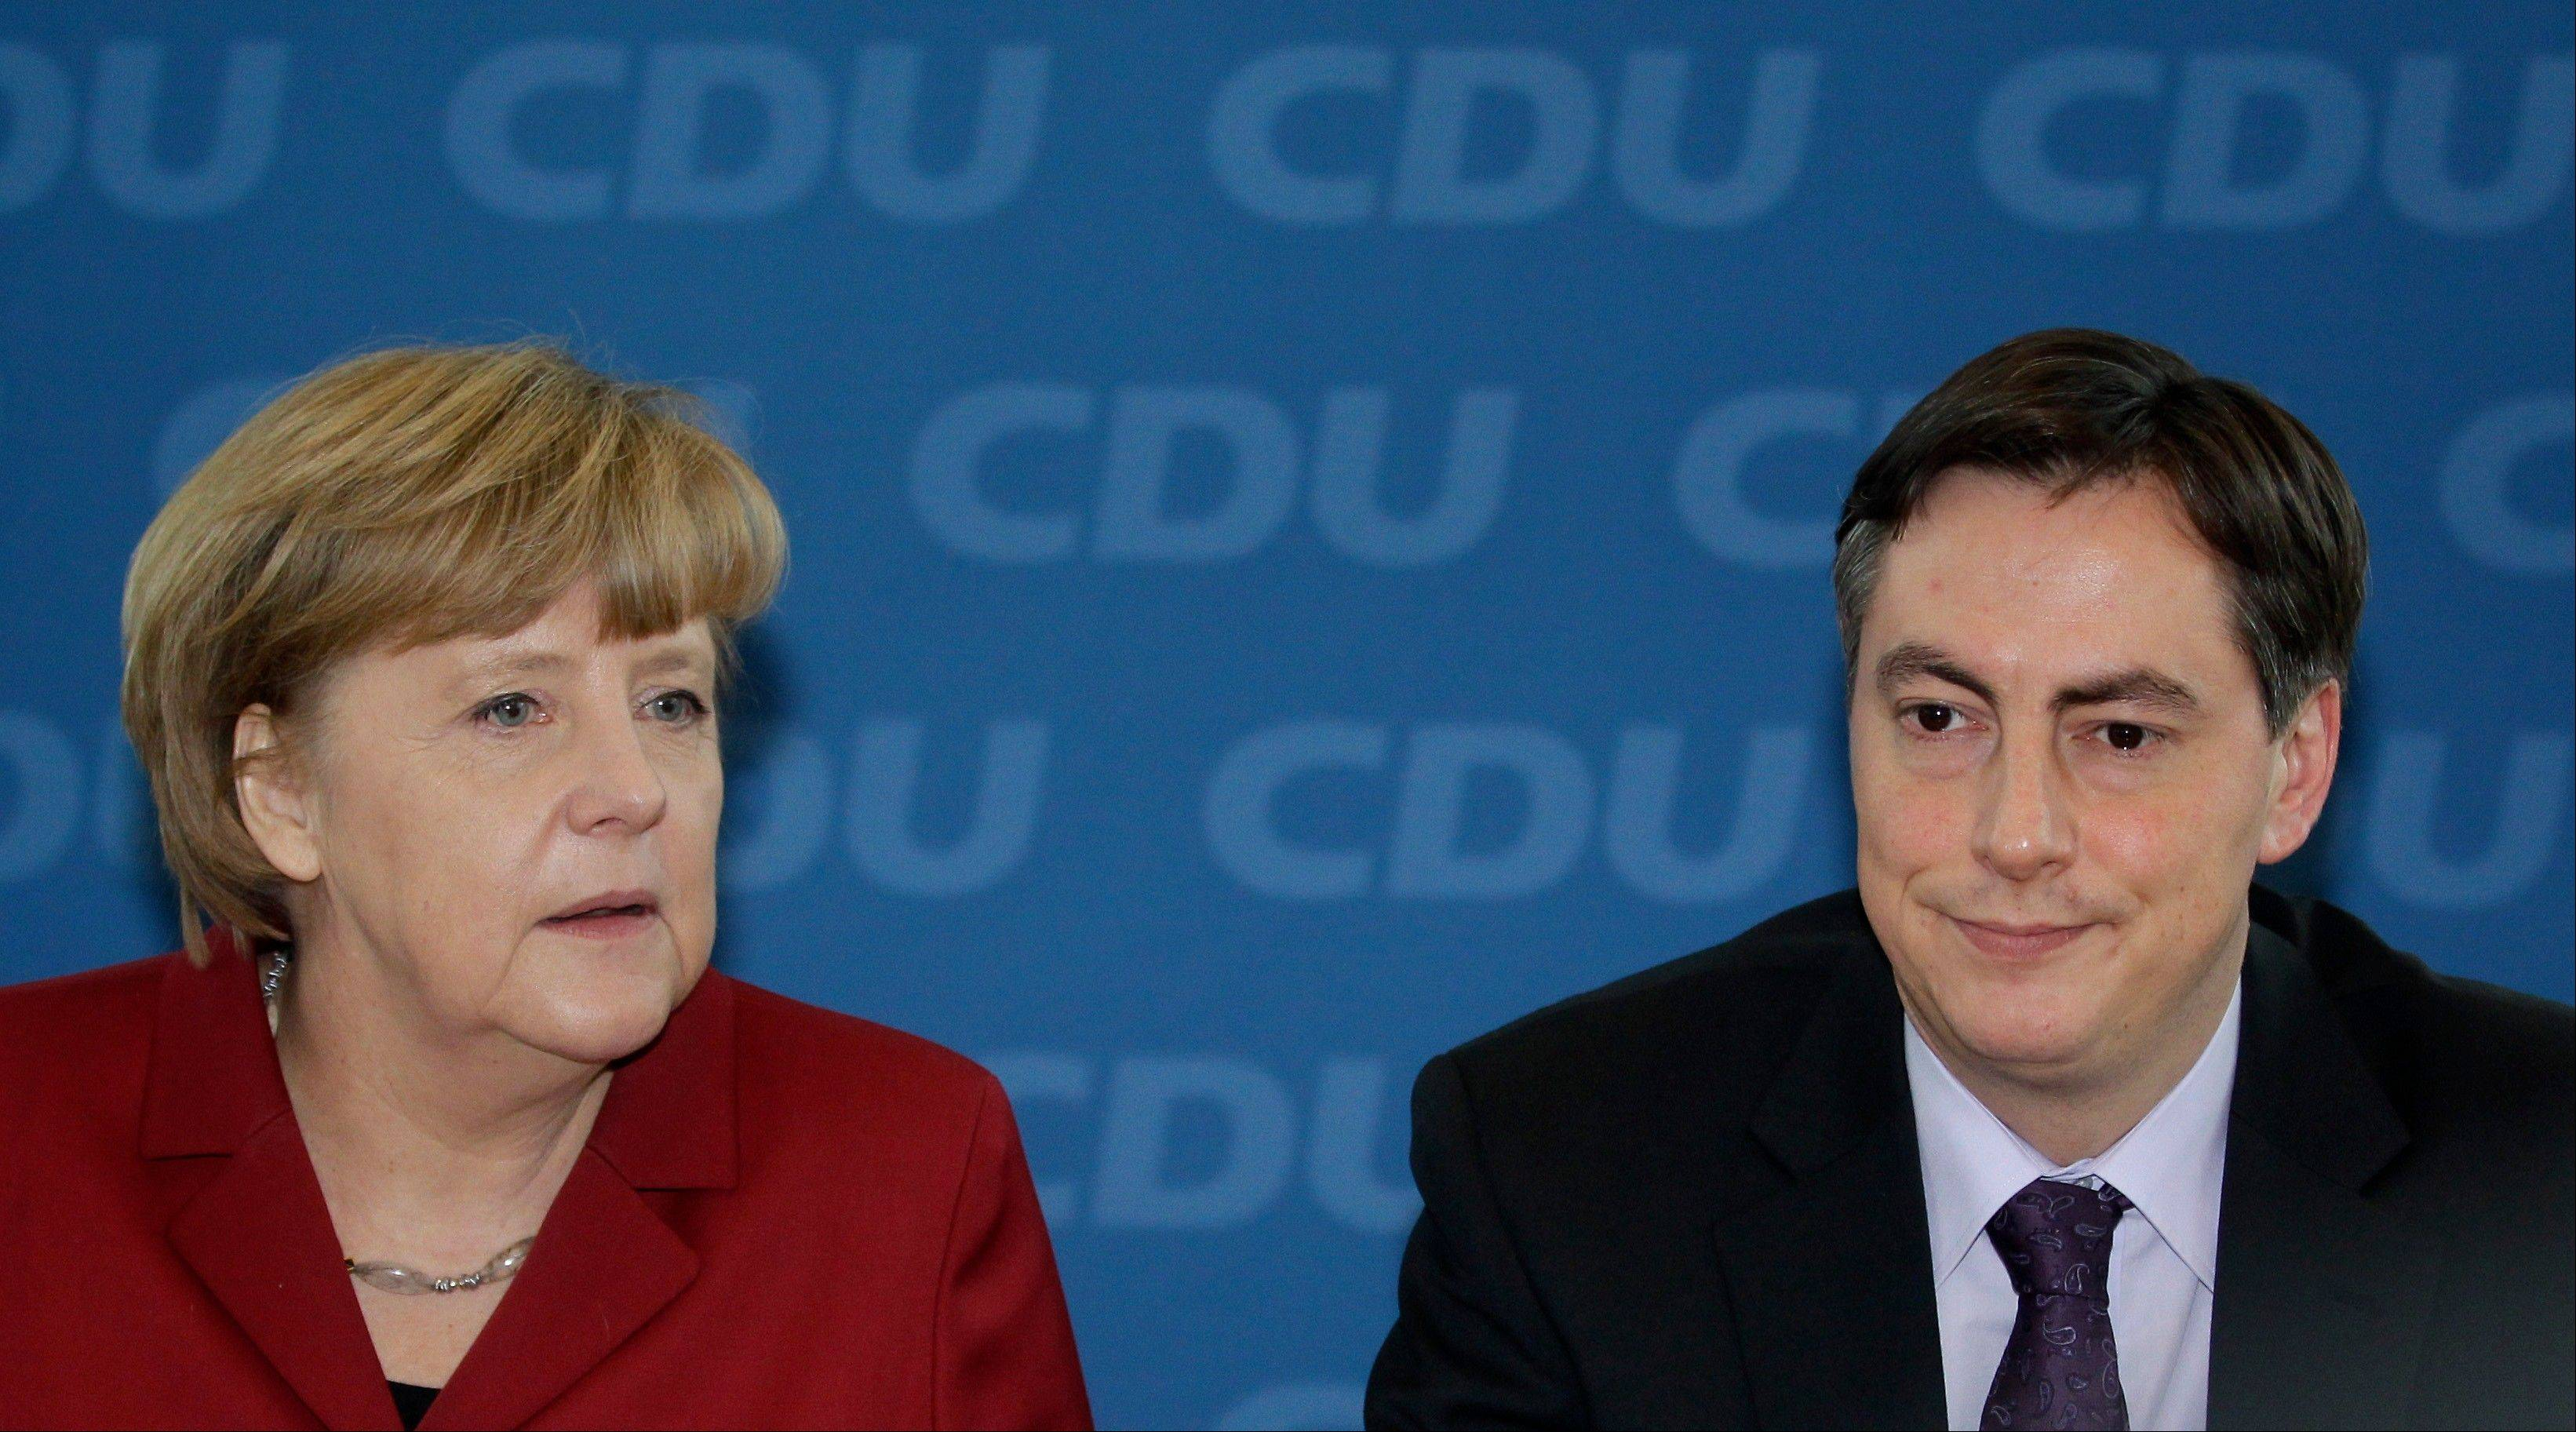 German Chancellor and chairwoman of the German Christian Democrats, CDU, Angela Merkel, left, and the CDU top candidate of the Lower Saxony state elections, David McAllister, right.